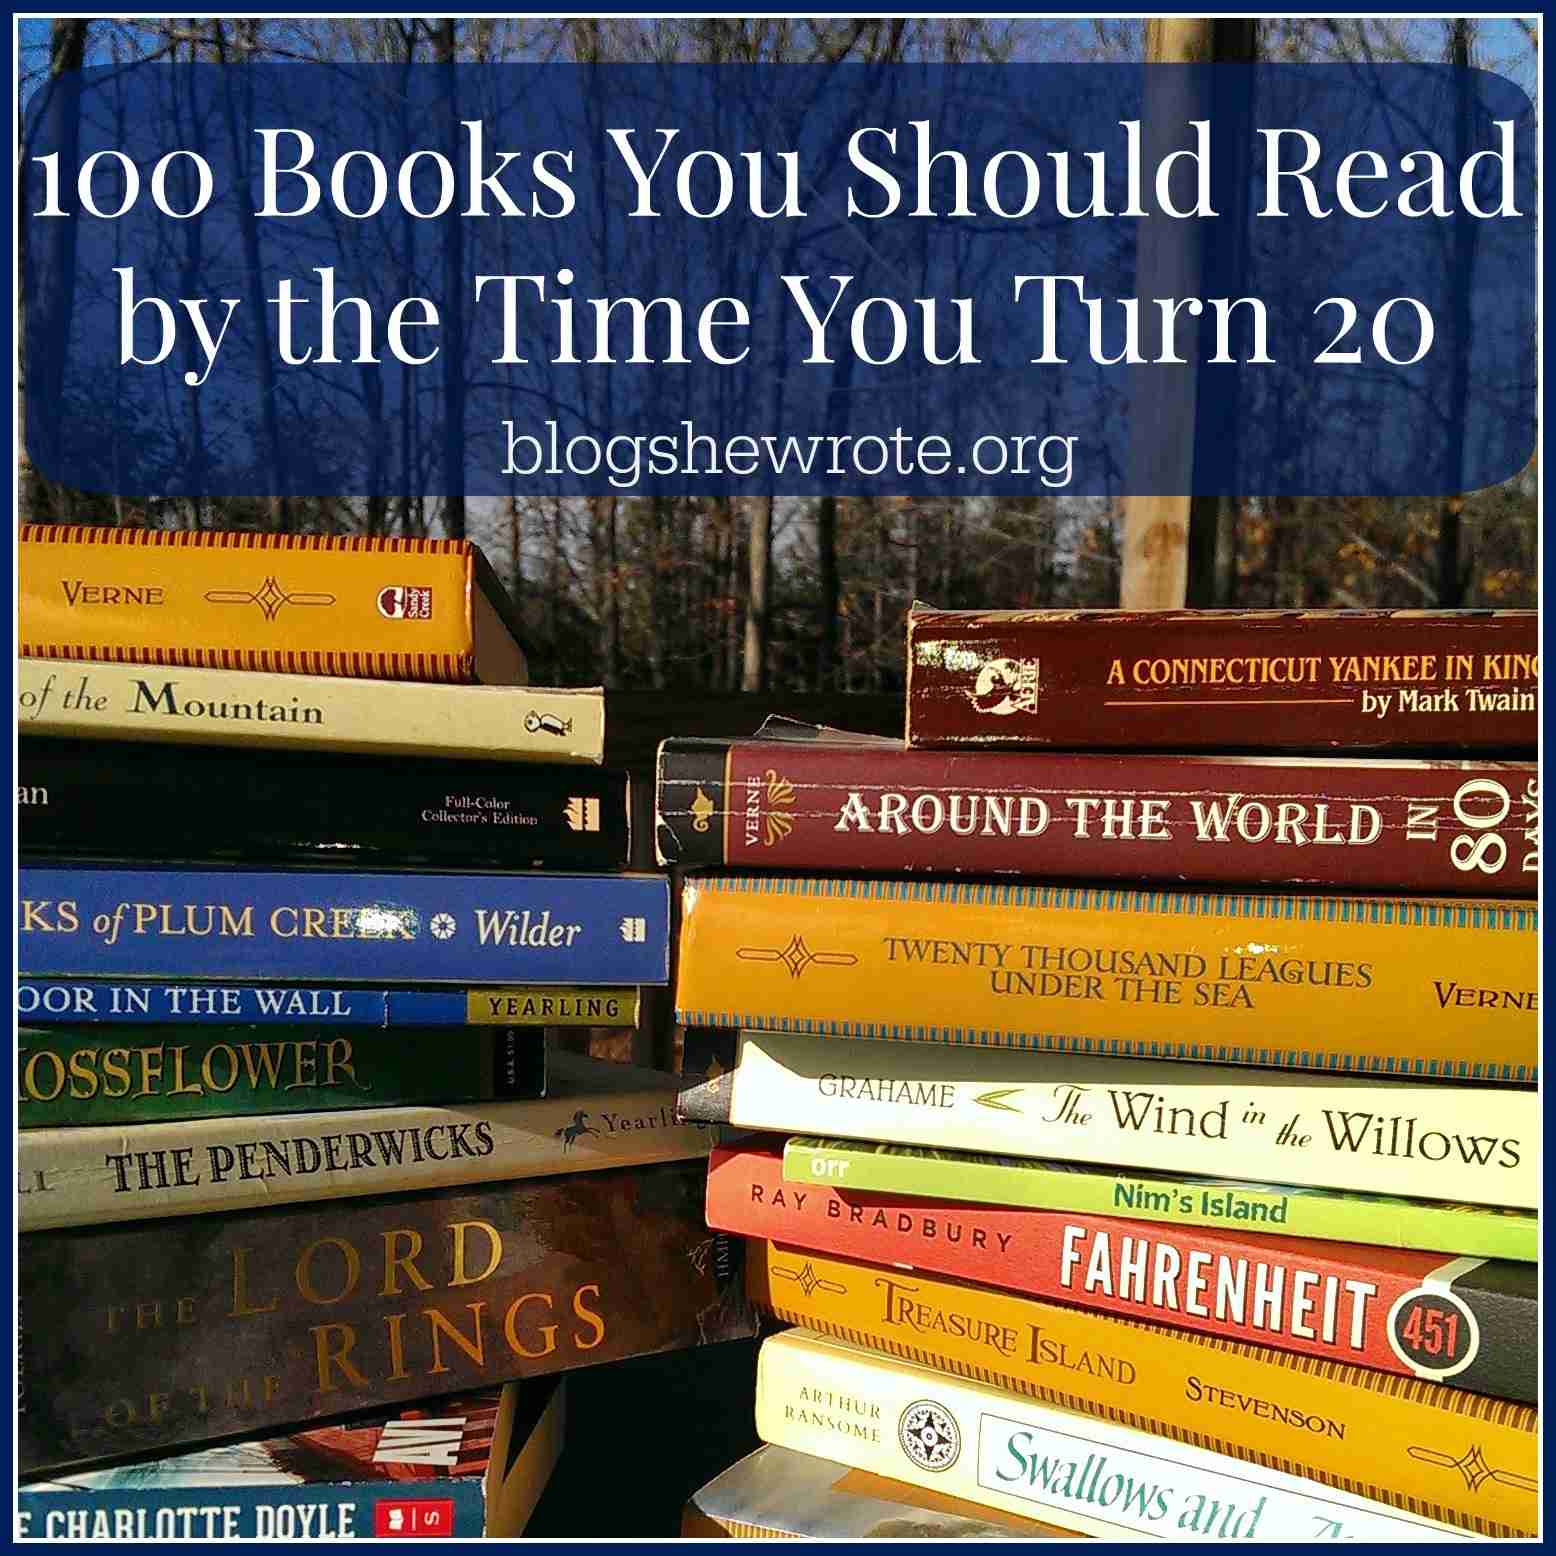 Blog, She Wrote: 100 Books You Should Read by the Time You Turn 20